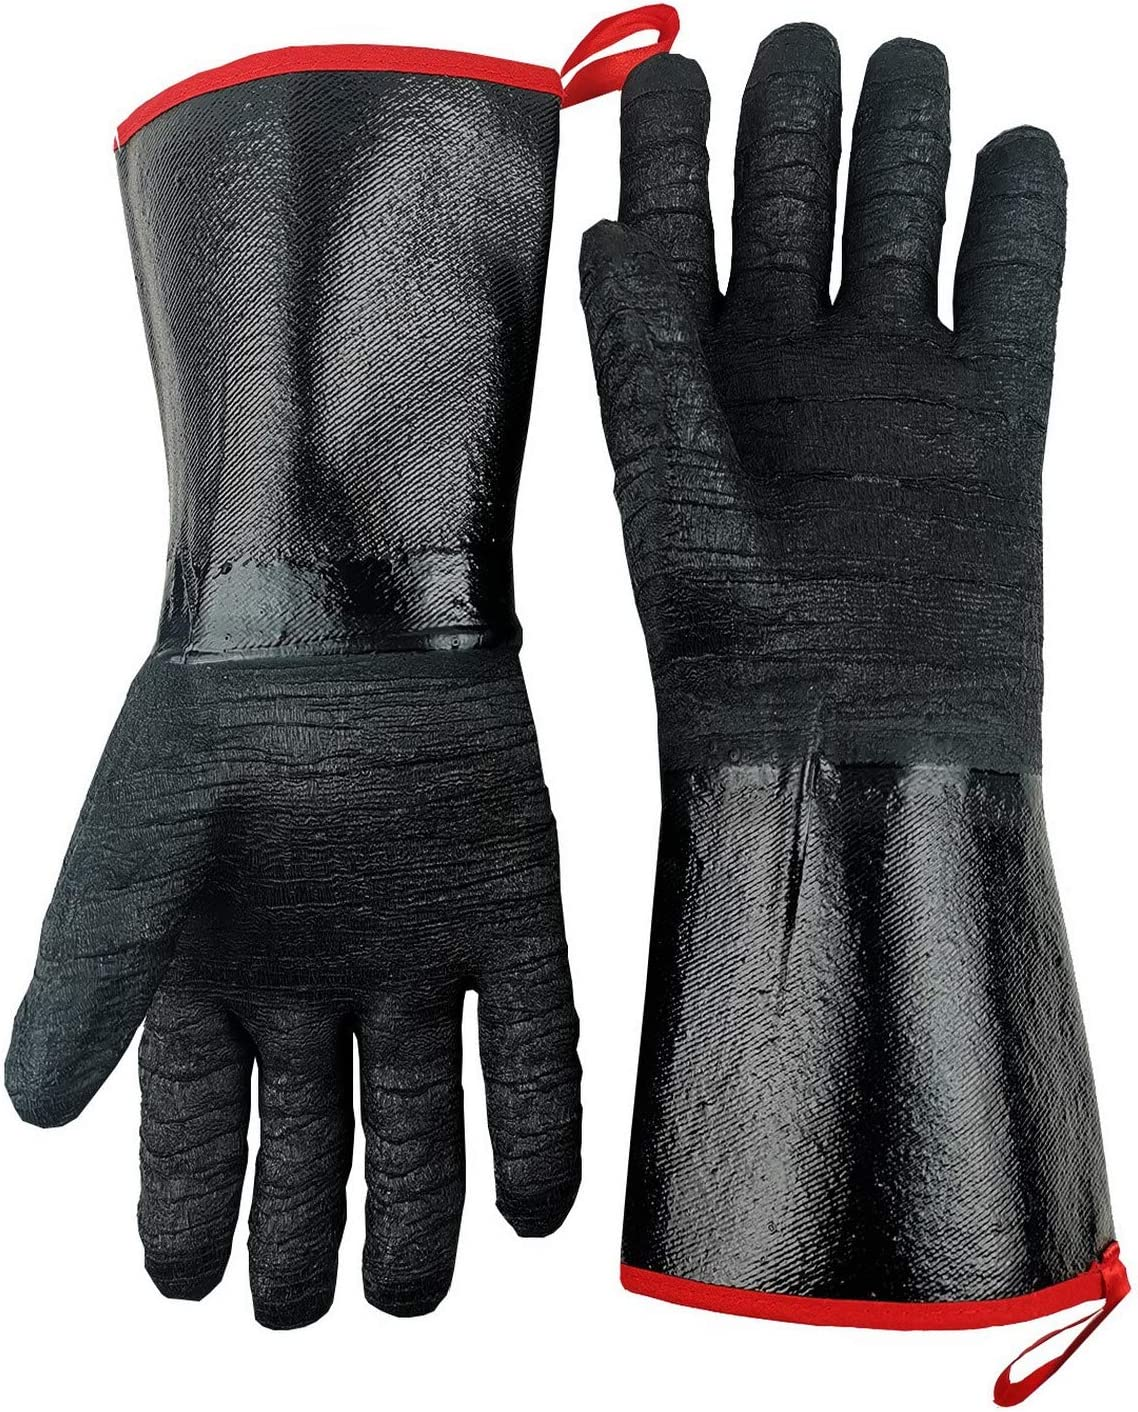 TUNGTAR BBQ Oven Gloves Heat Resistant-Smoker, Grill, Cooking Barbecue Gloves, for Handling Heat Food Right on Your Fryer,Grill, Waterproof, Fireproof, Oil Resistant Neoprene Coating,14 Inches,932℉,